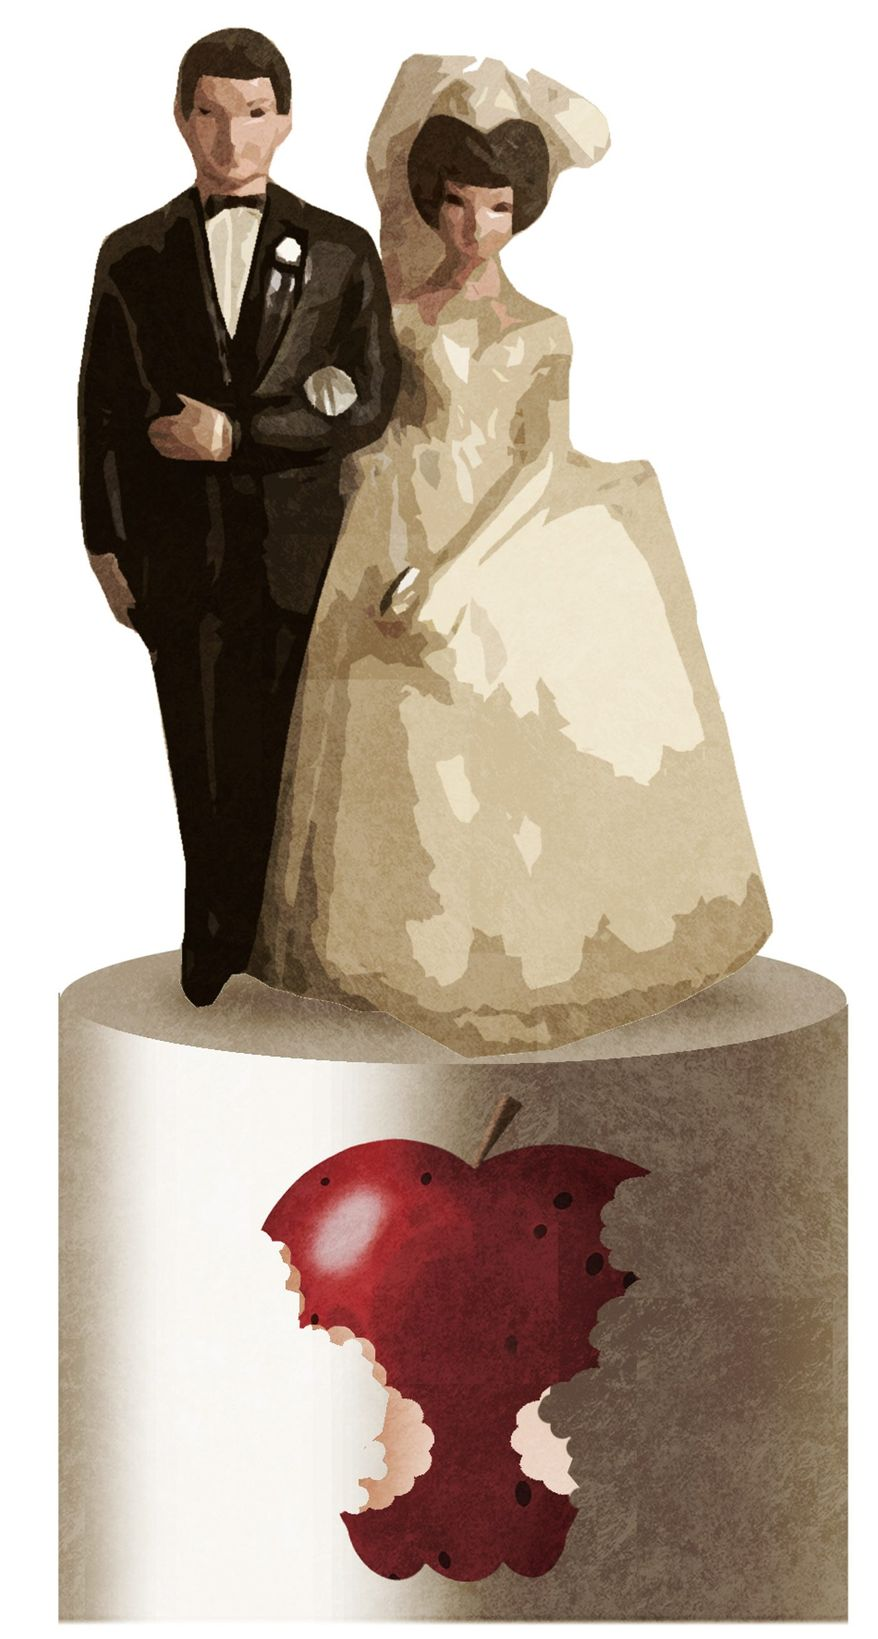 Illustration on sexual abstinence before marriage by Alexander Hunter/The Washington Times